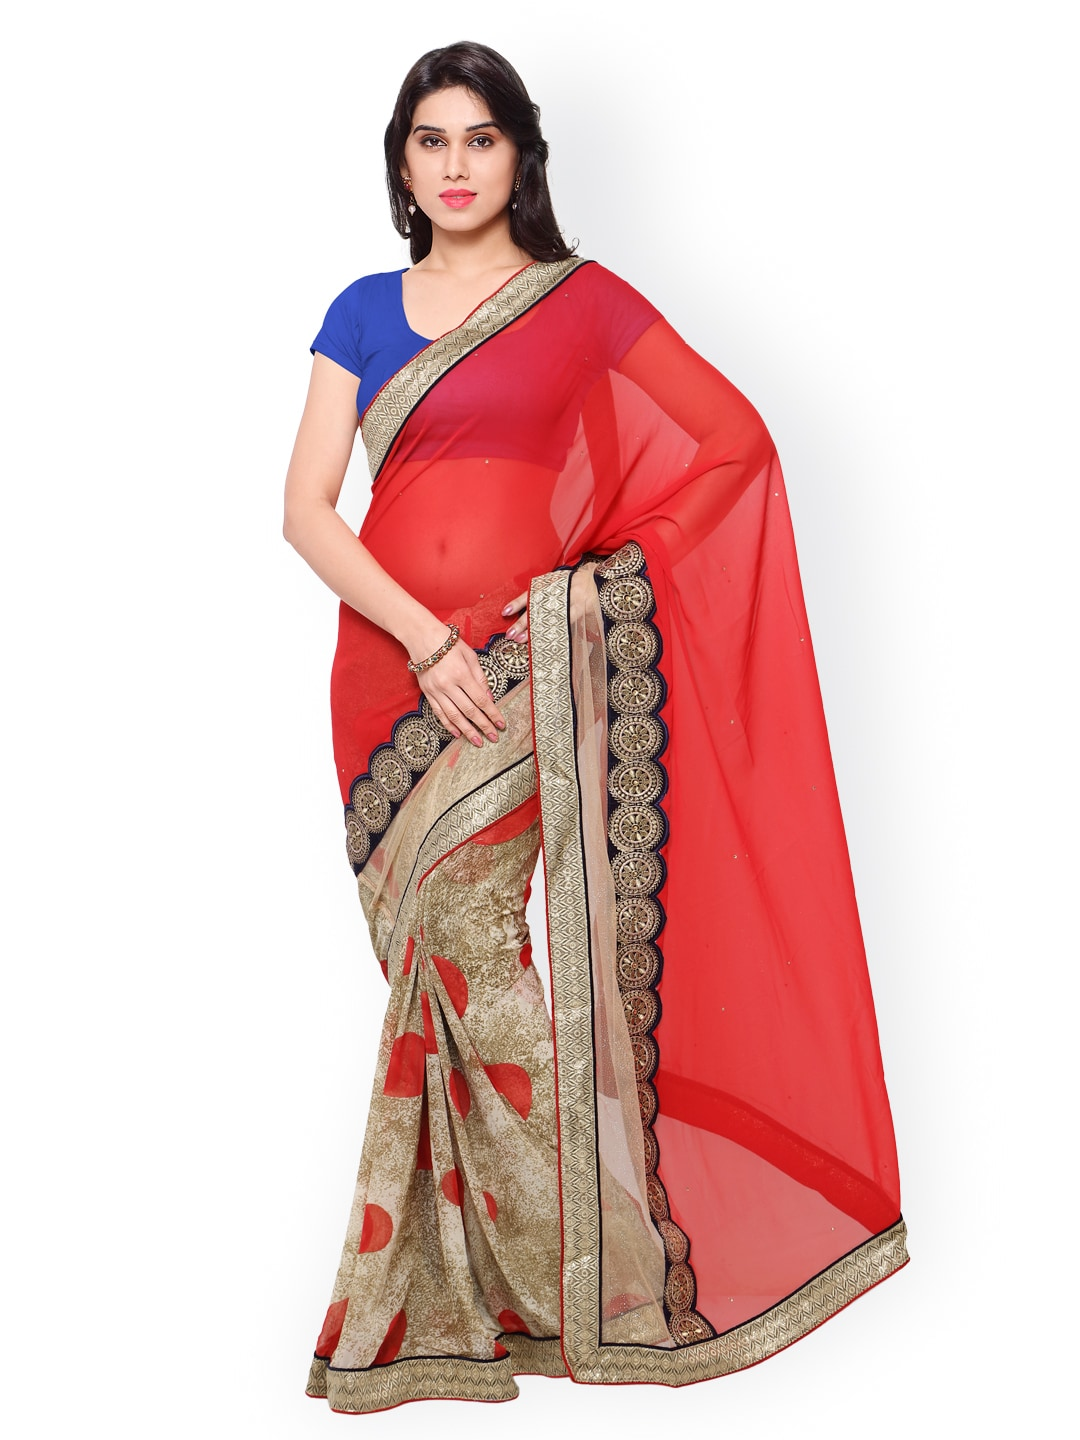 subhash sarees Red & Beige Embroidered Chiffon & Georgette Embellished Saree